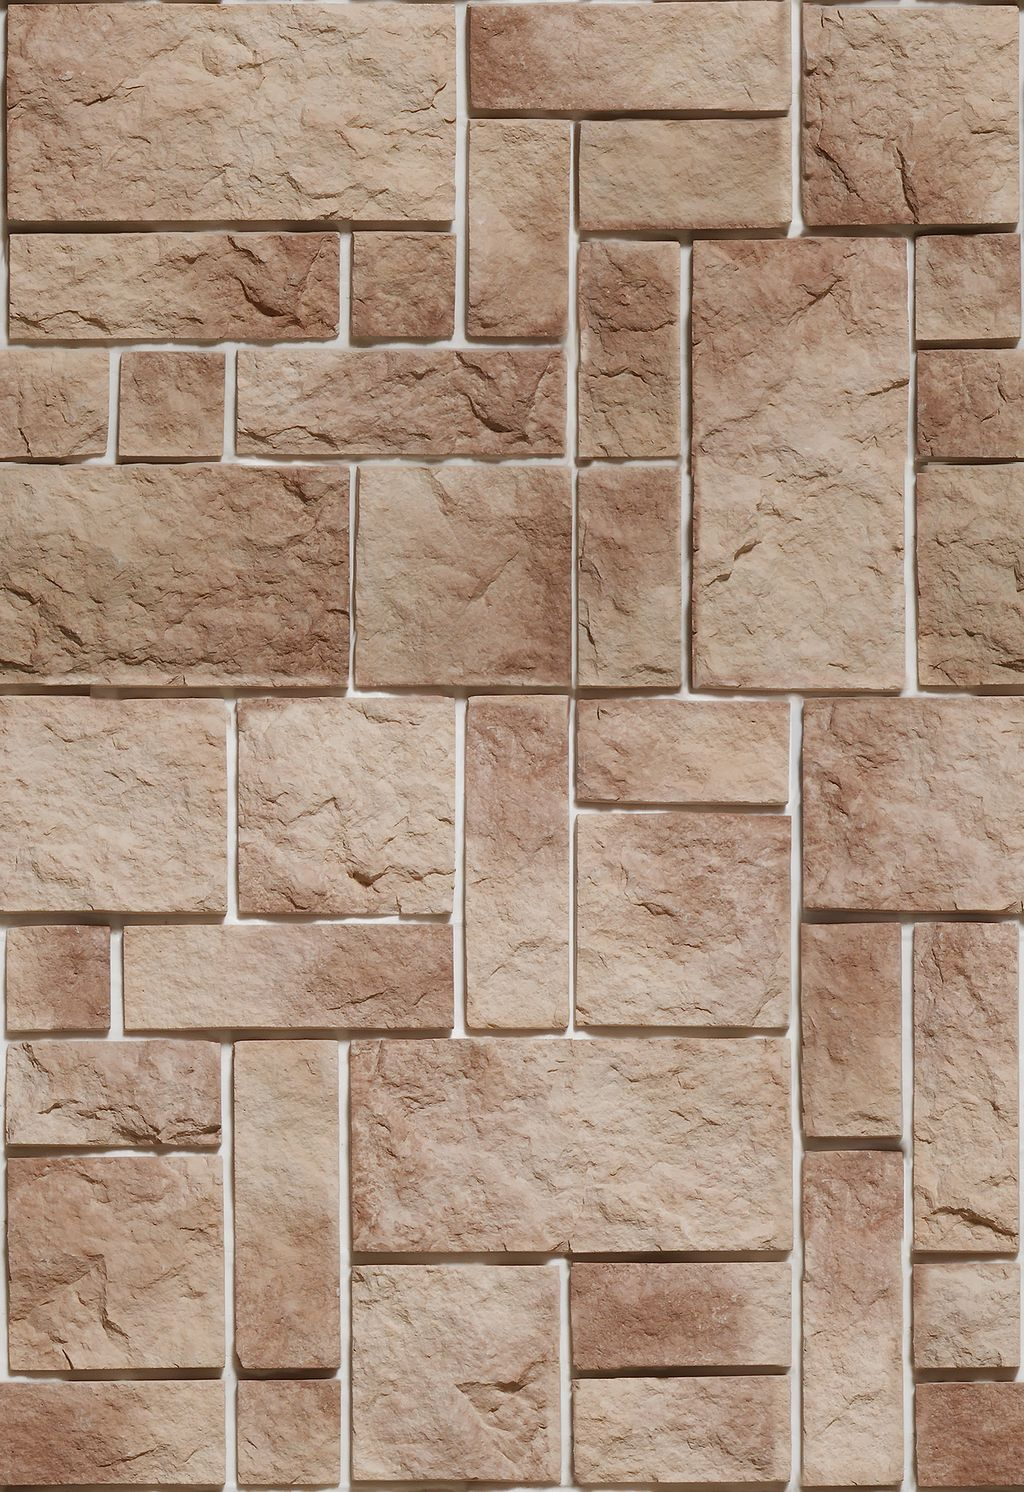 Cool 60 Awesome Tile Texture Ideas For Your Wall And Floor Https Kidmagz Com 60 Awesome Tile Texture Id Stone Tile Texture Exterior Wall Tiles Tiles Texture